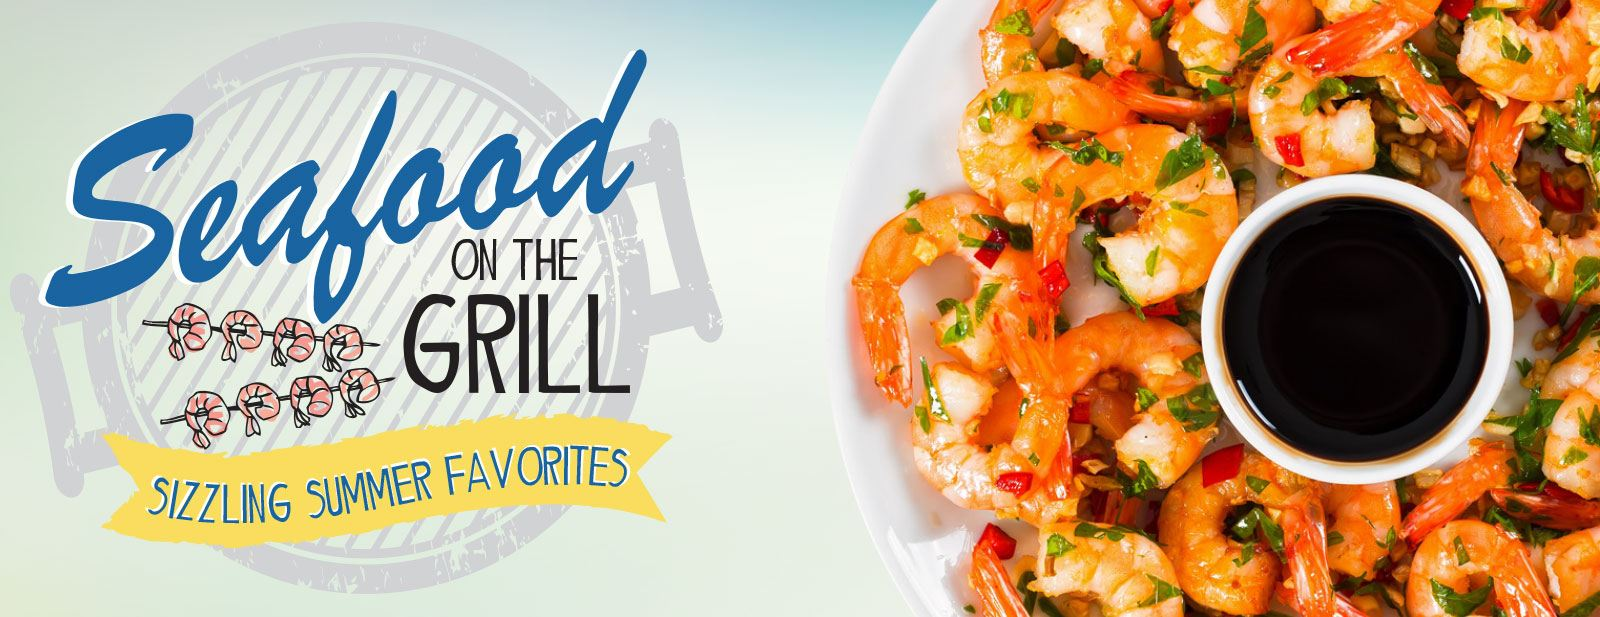 seafood-grill